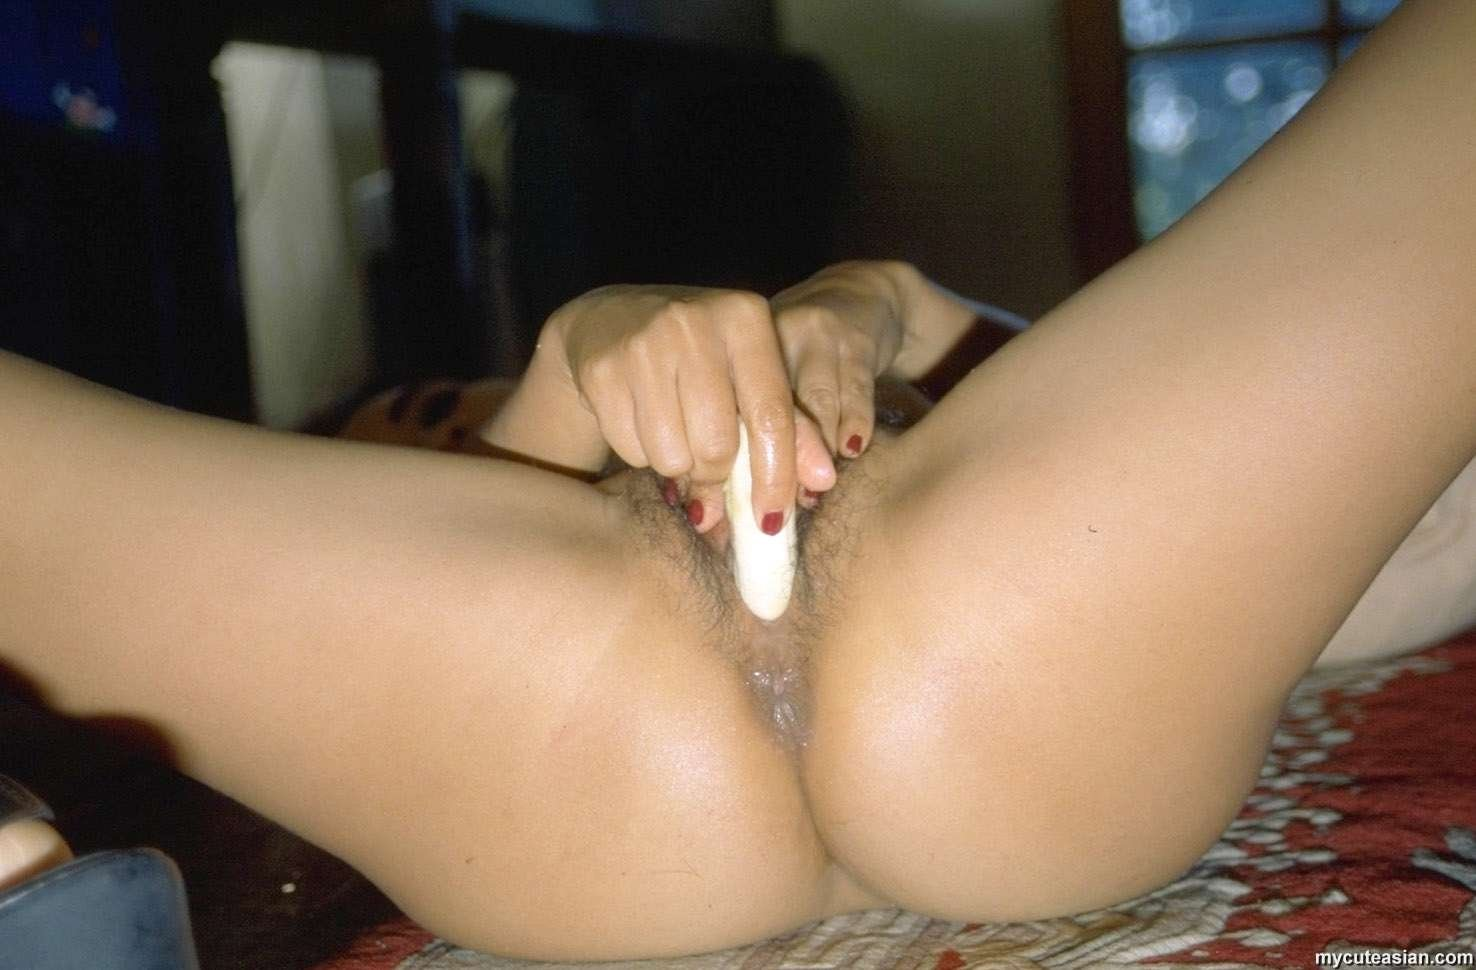 eve jeffers sex tape